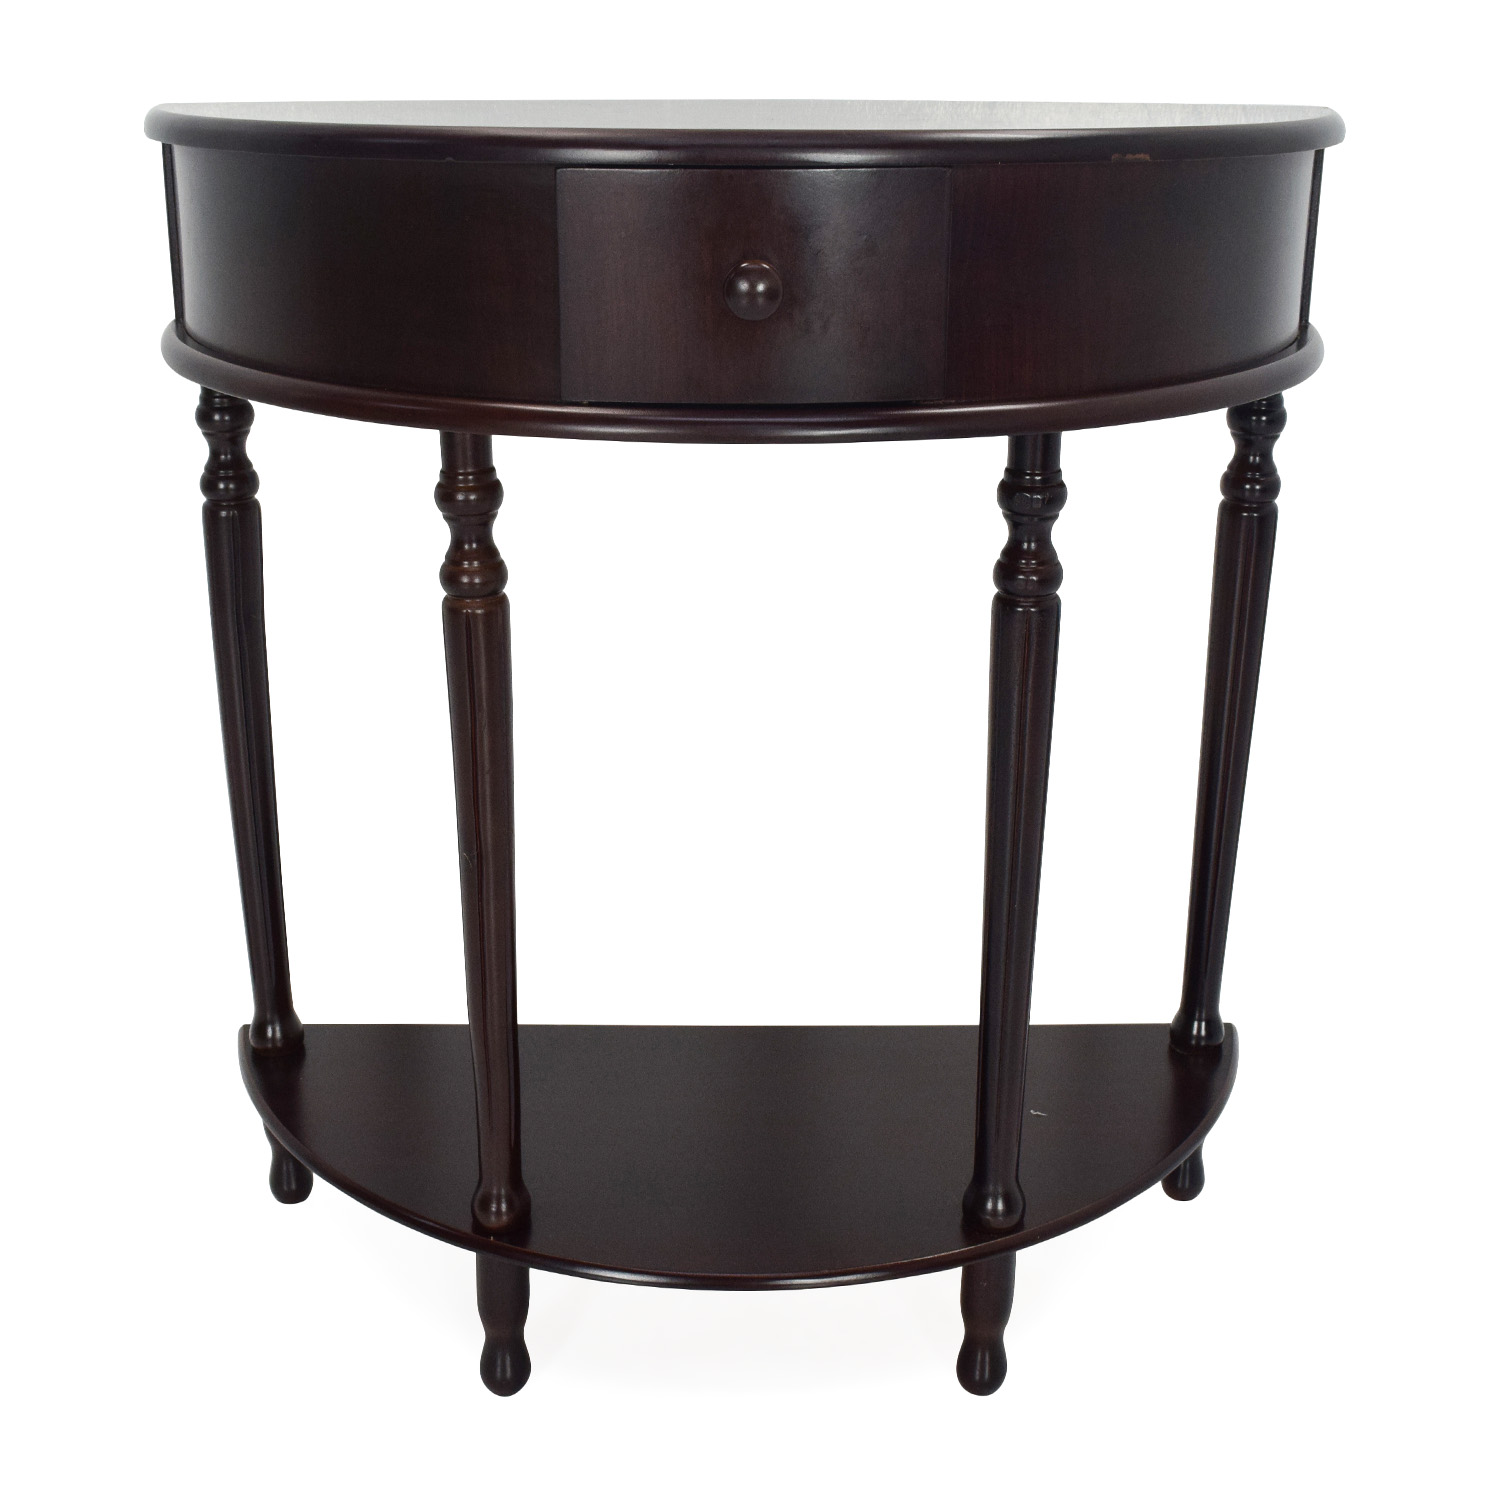 off mill mini console table tables used entryway base accent target gold metal ikea storage chest hampton bay edington collection west elm glass floor lamp sun chairs bunnings